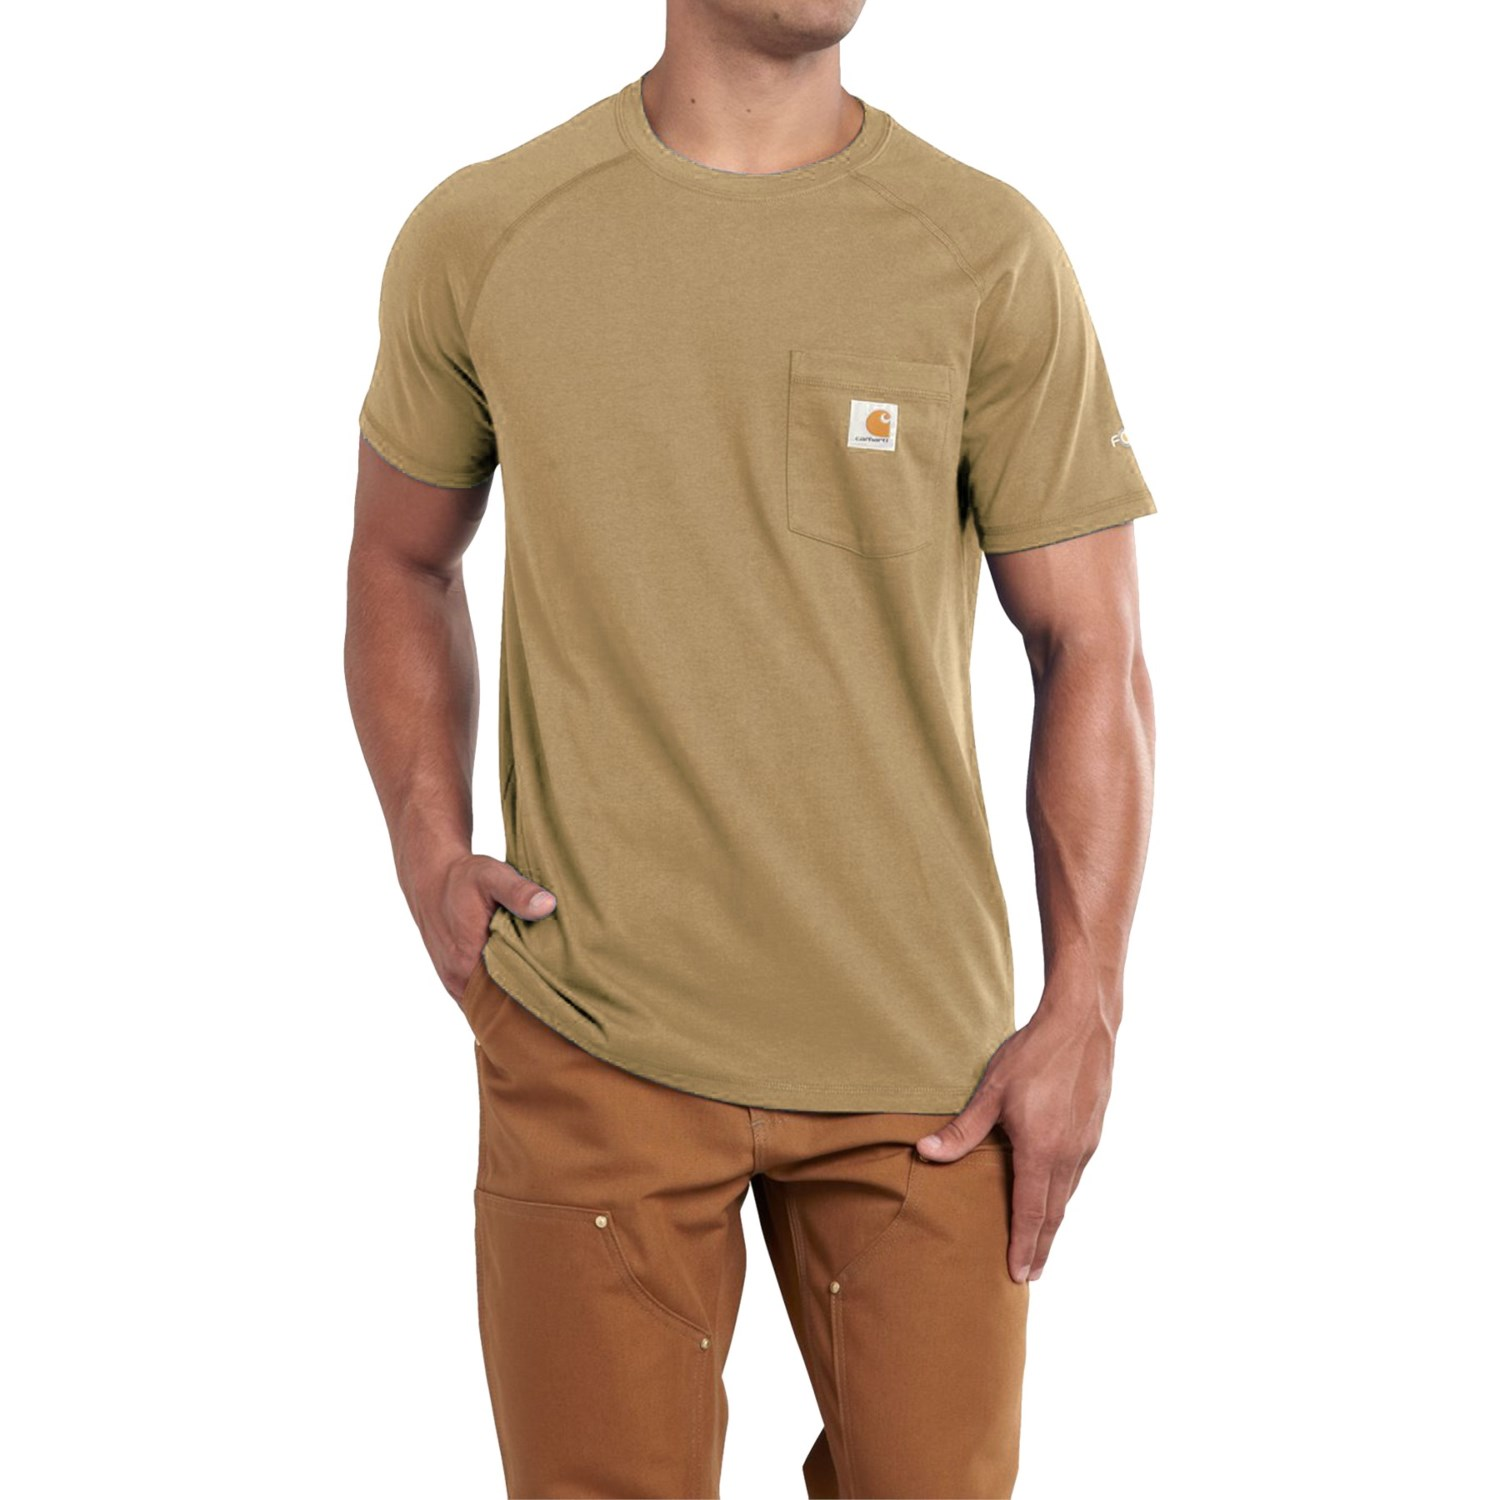 Buy Columbia Sportswear® big & tall shirts direct from the manufacturer. Find men's big tall shirts, big and tall & tall men's shirts.